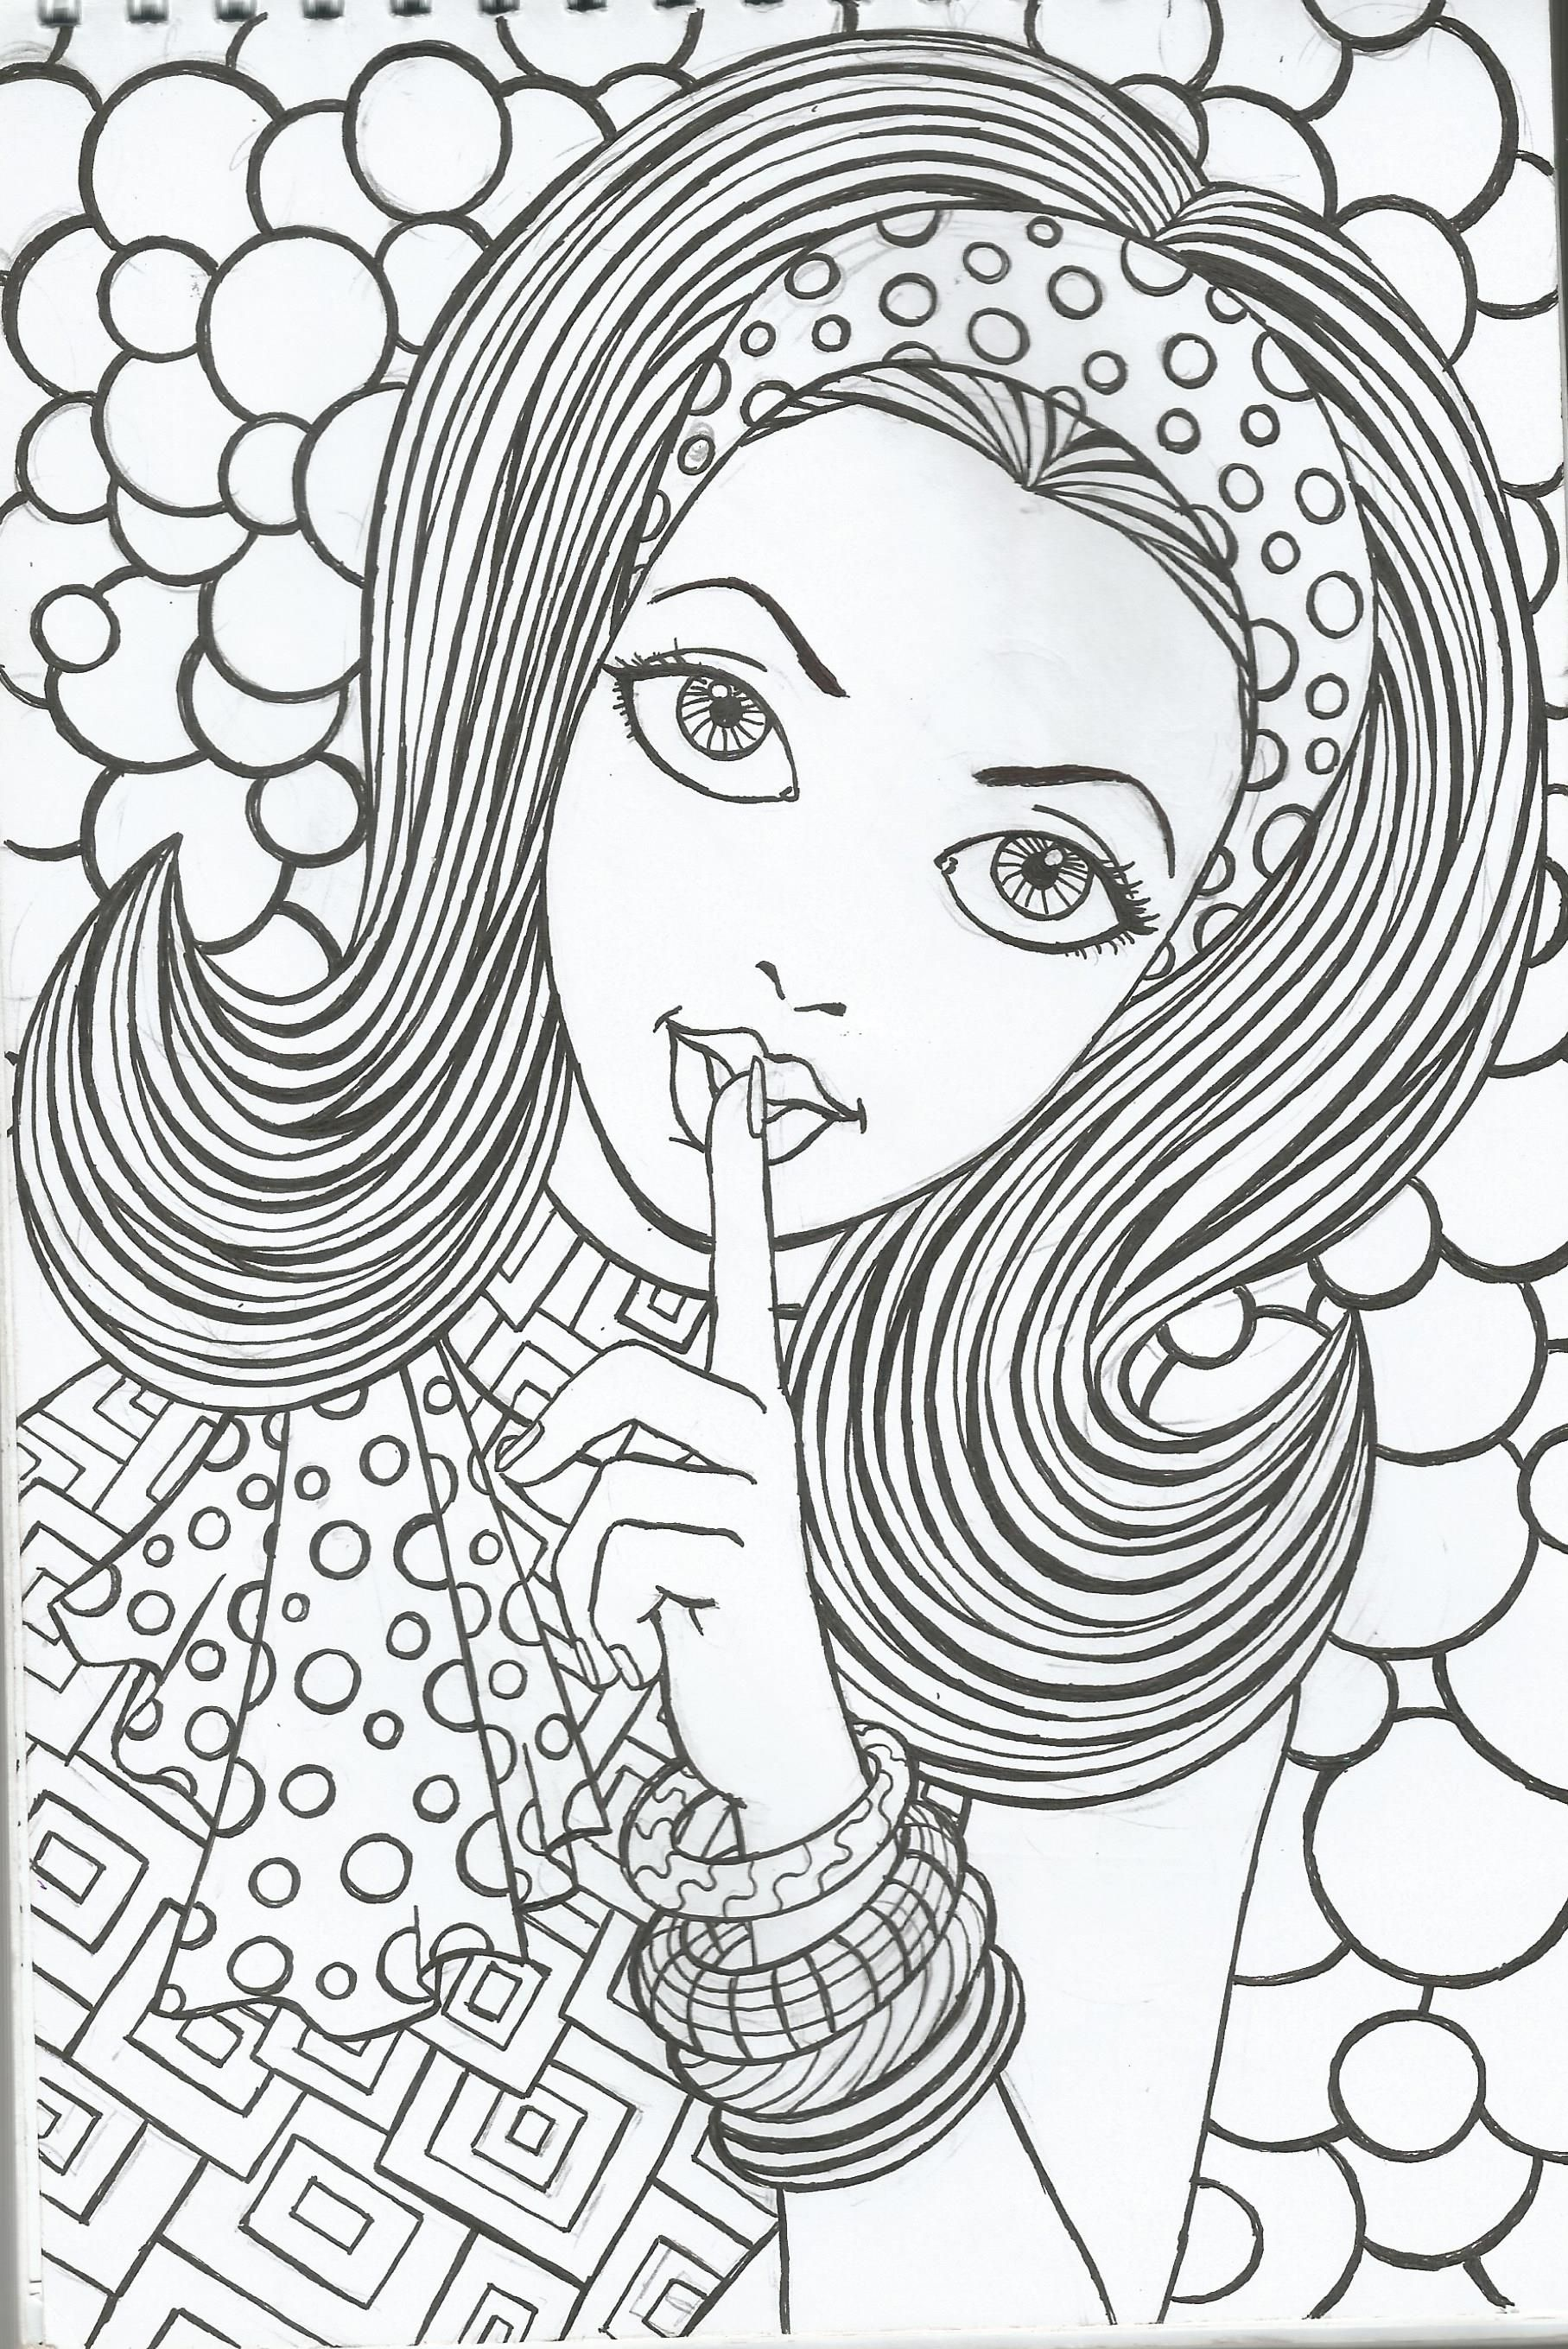 Pin von BEEMEARTS auf ADULT COLORING BOOK | Pinterest | Kreativ